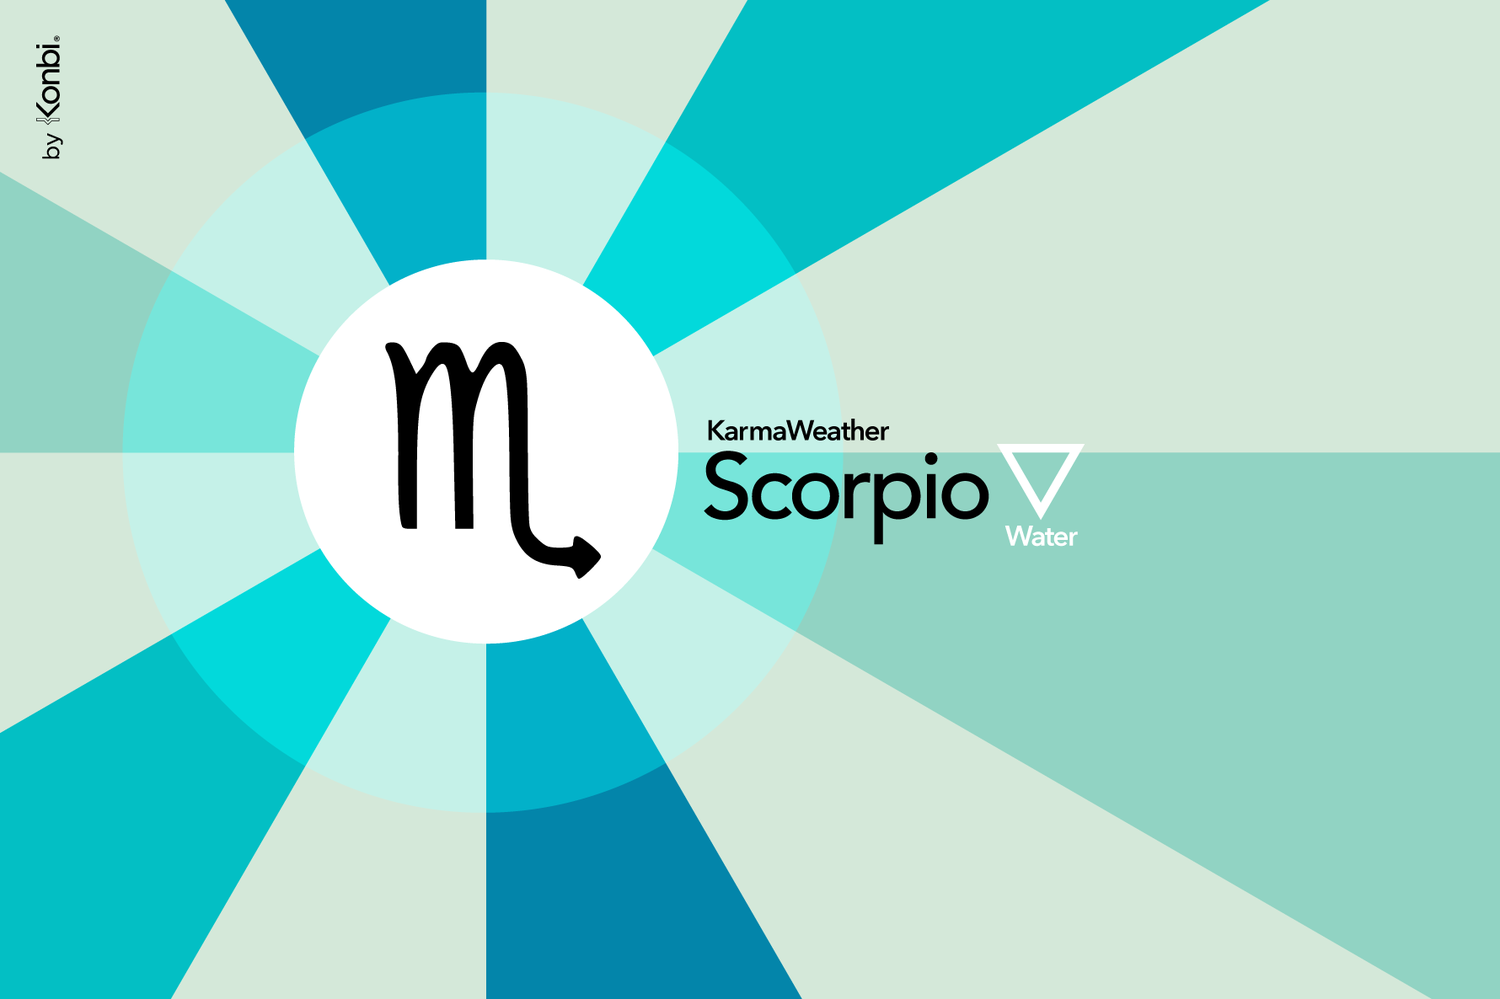 what star sign goes with scorpio